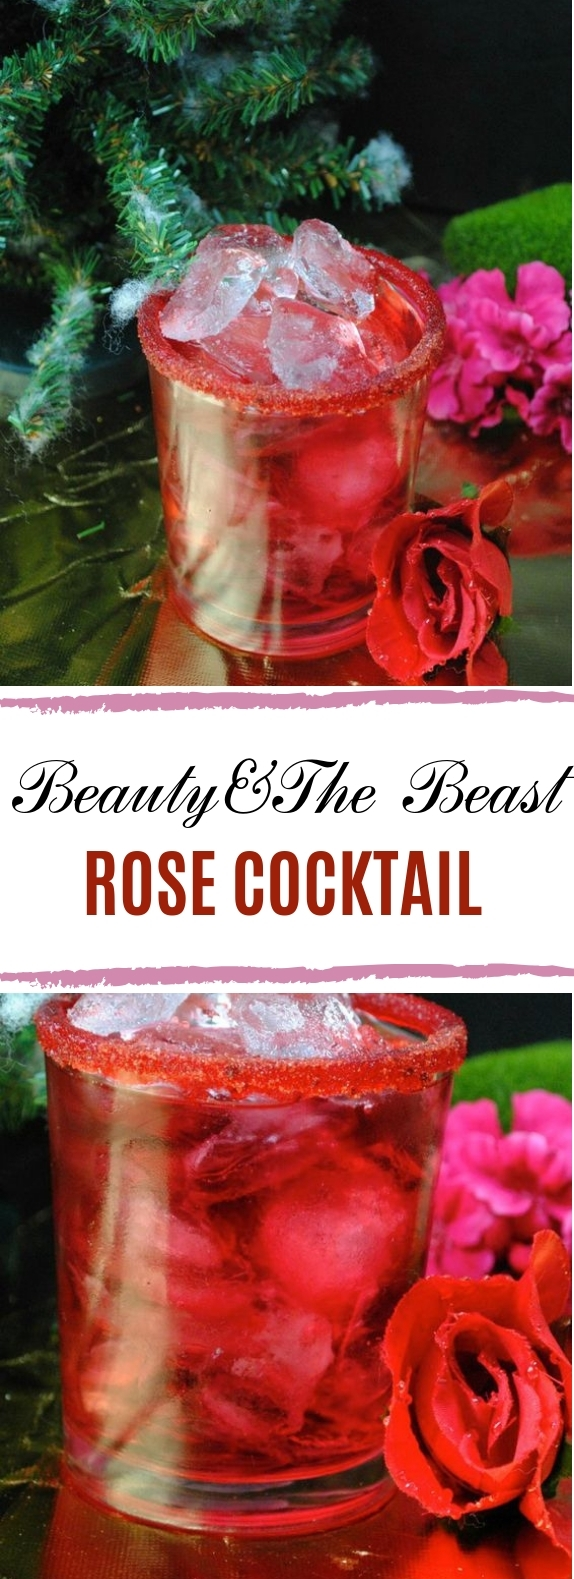 The Beauty and The Beast Rose Cocktail #drinks #cocktails